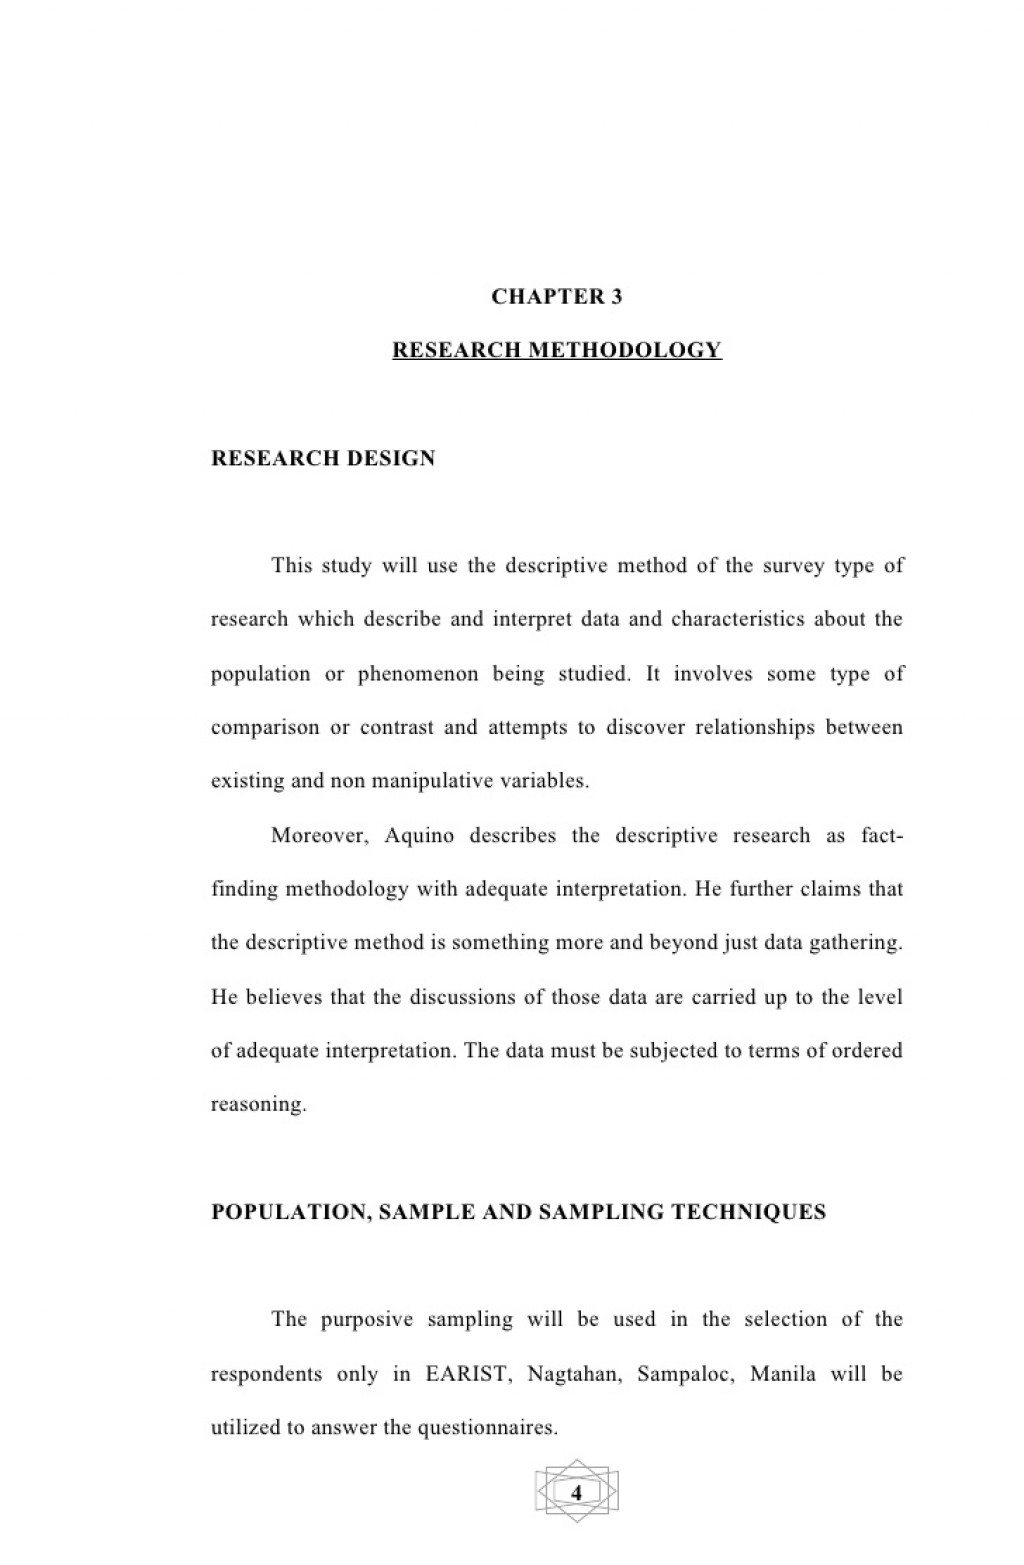 004 Thesis My Documentation Research Paper Experimental Sample Pdf Top Philippines Large